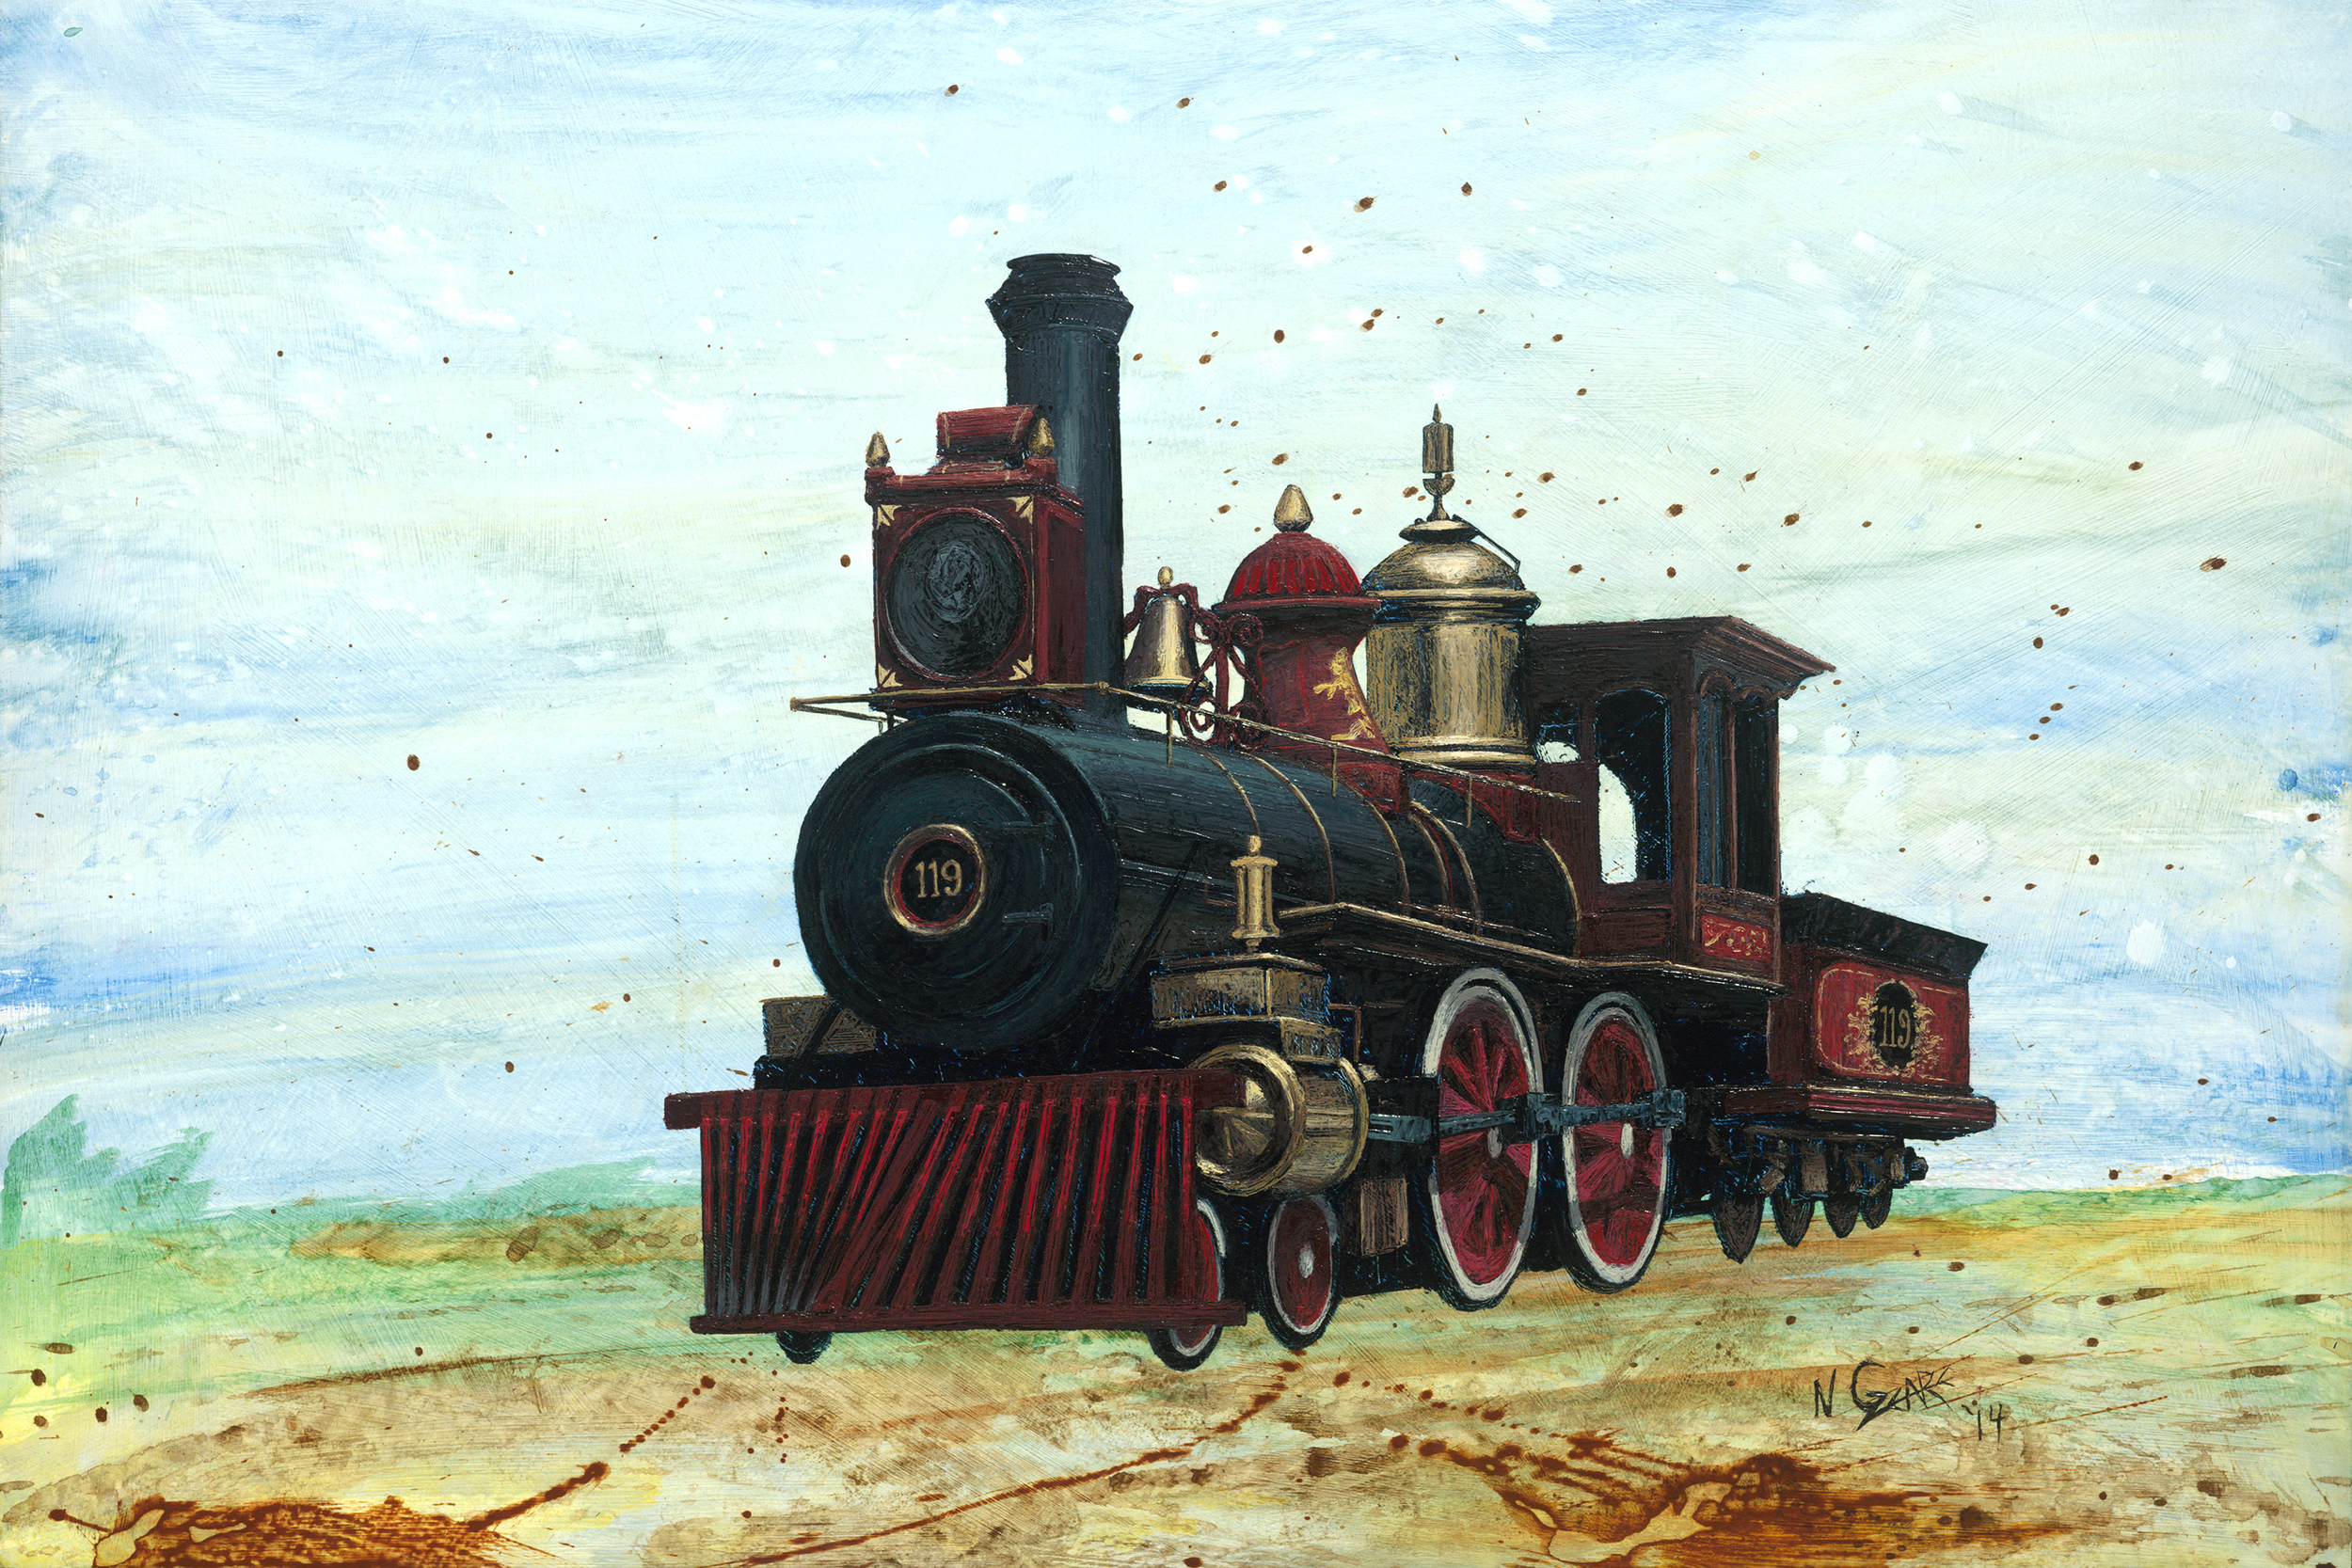 """Union Pacific 119"" - Oil and Acrylic on wood, 24"" x 36"""